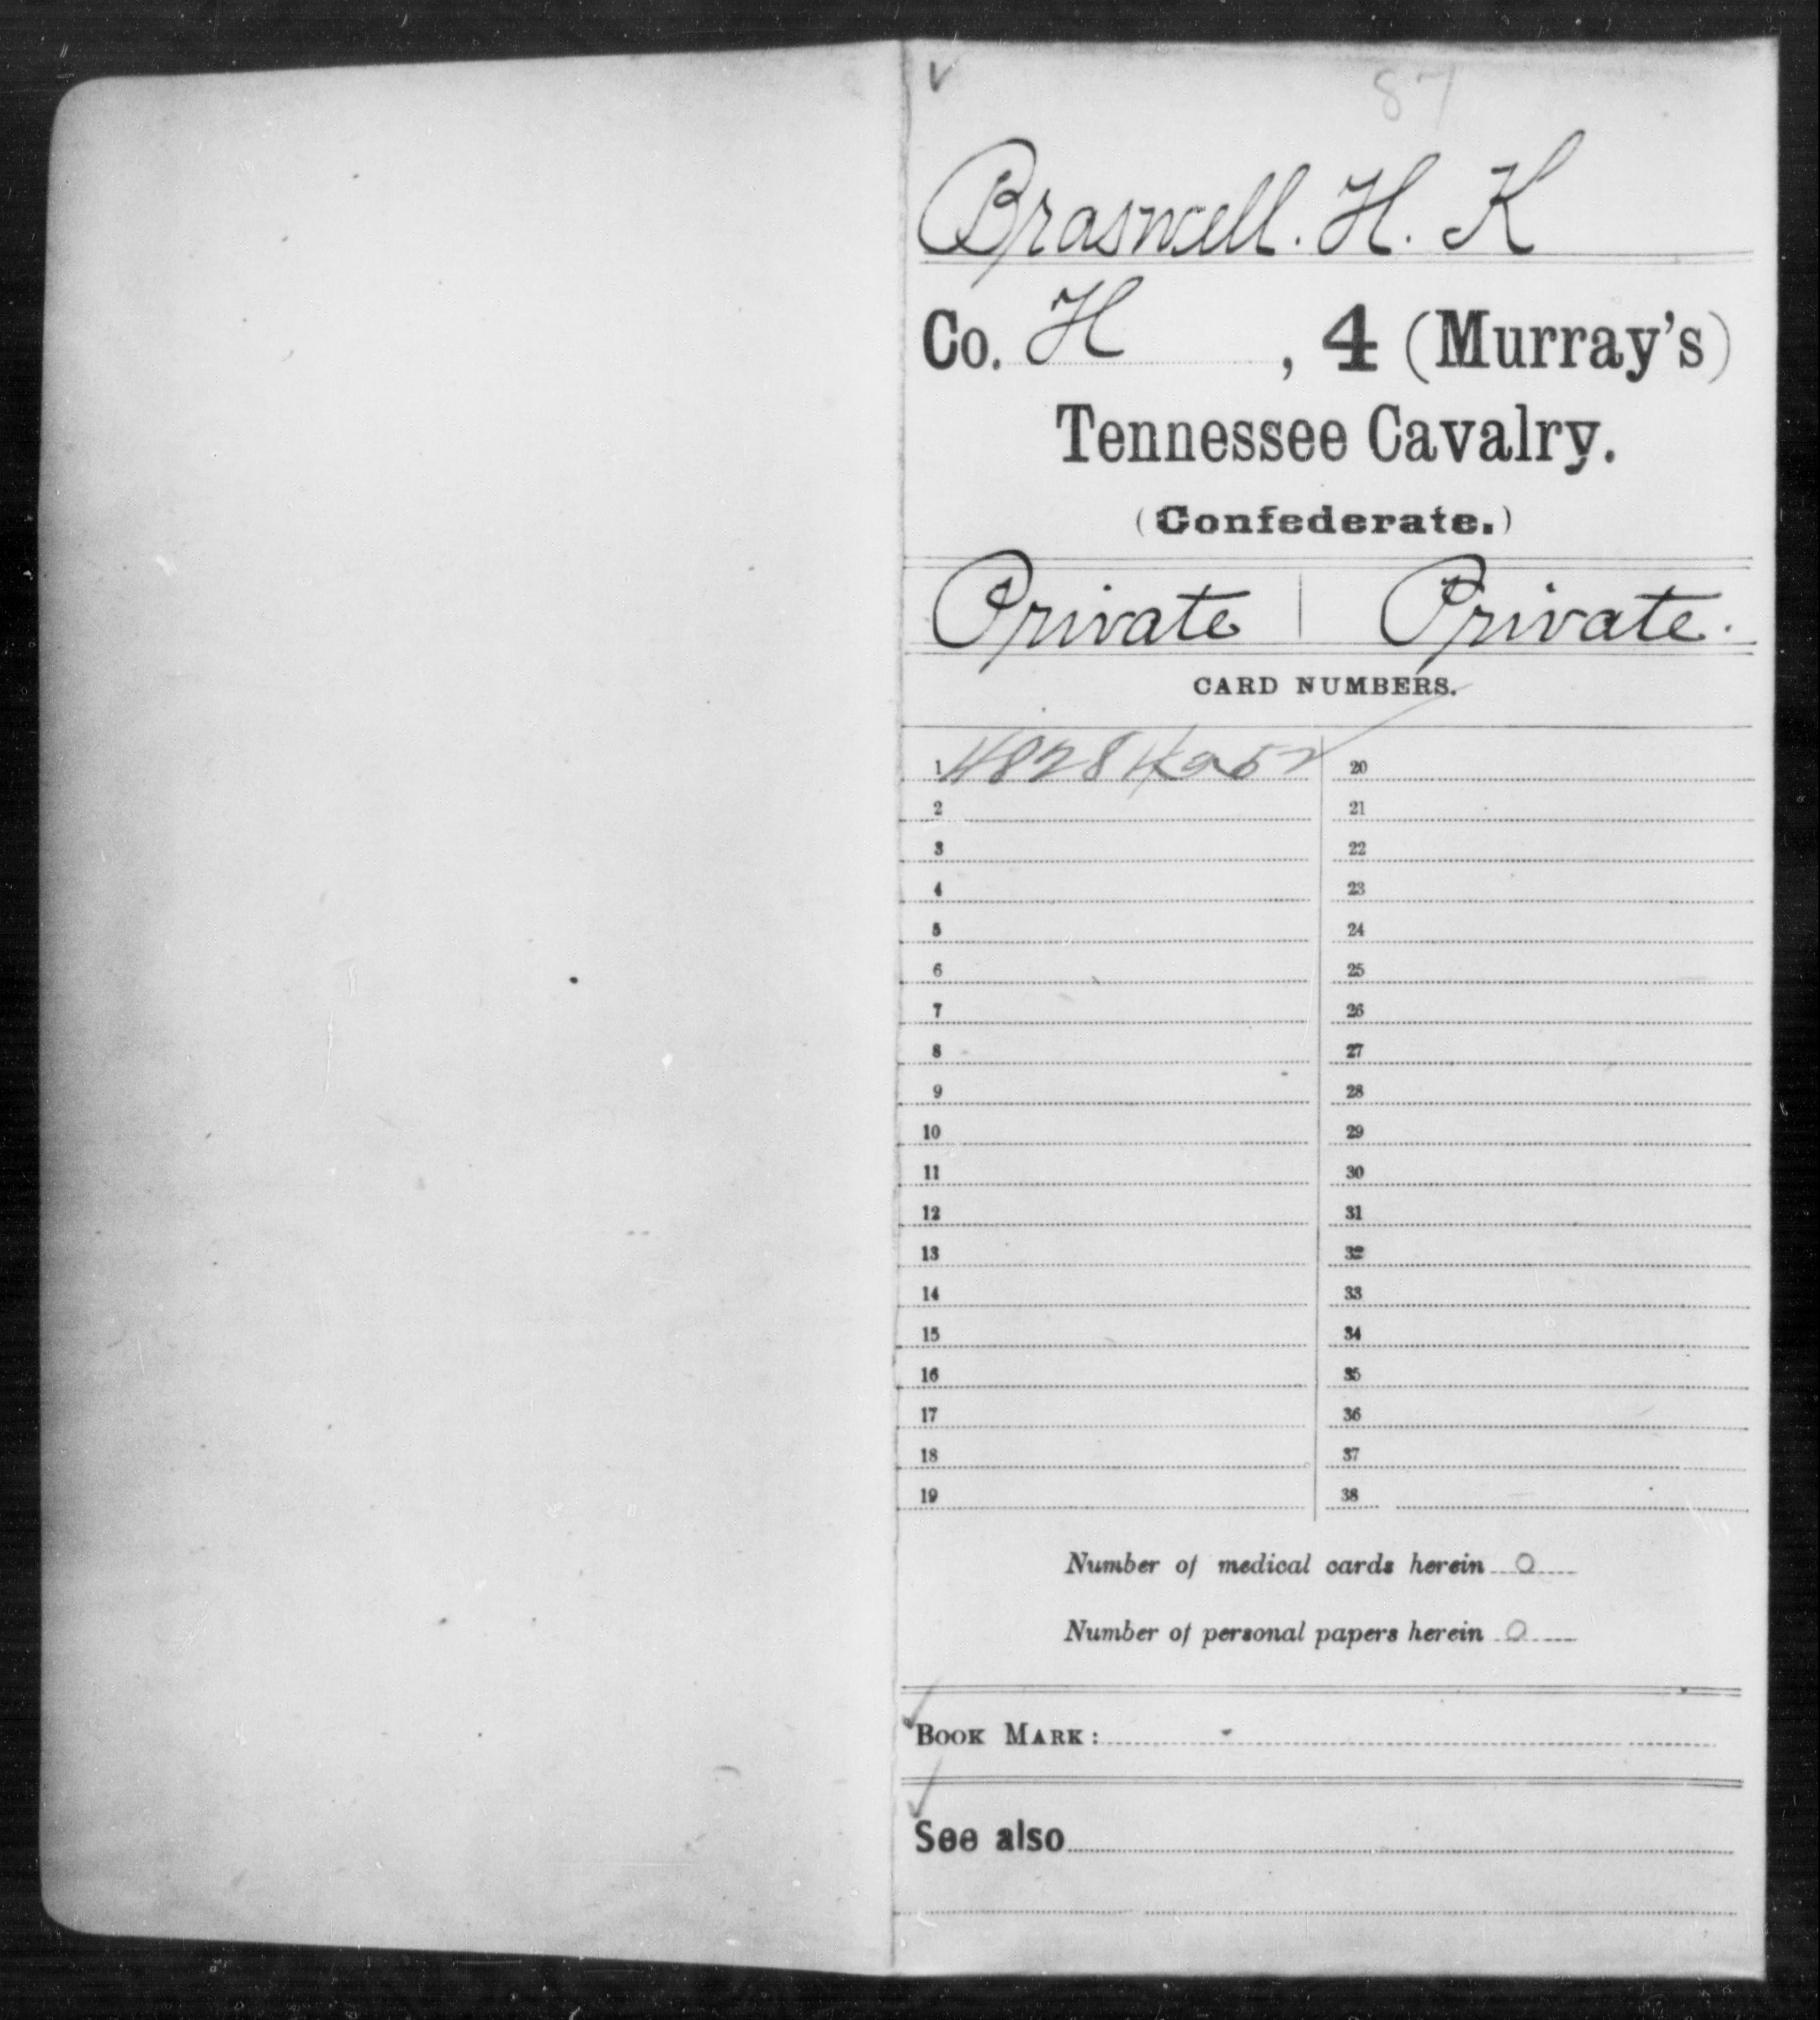 [Tennessee] Braswell, H K - Age 20, Year: 1861 - Fourth (Murray's) Cavalry